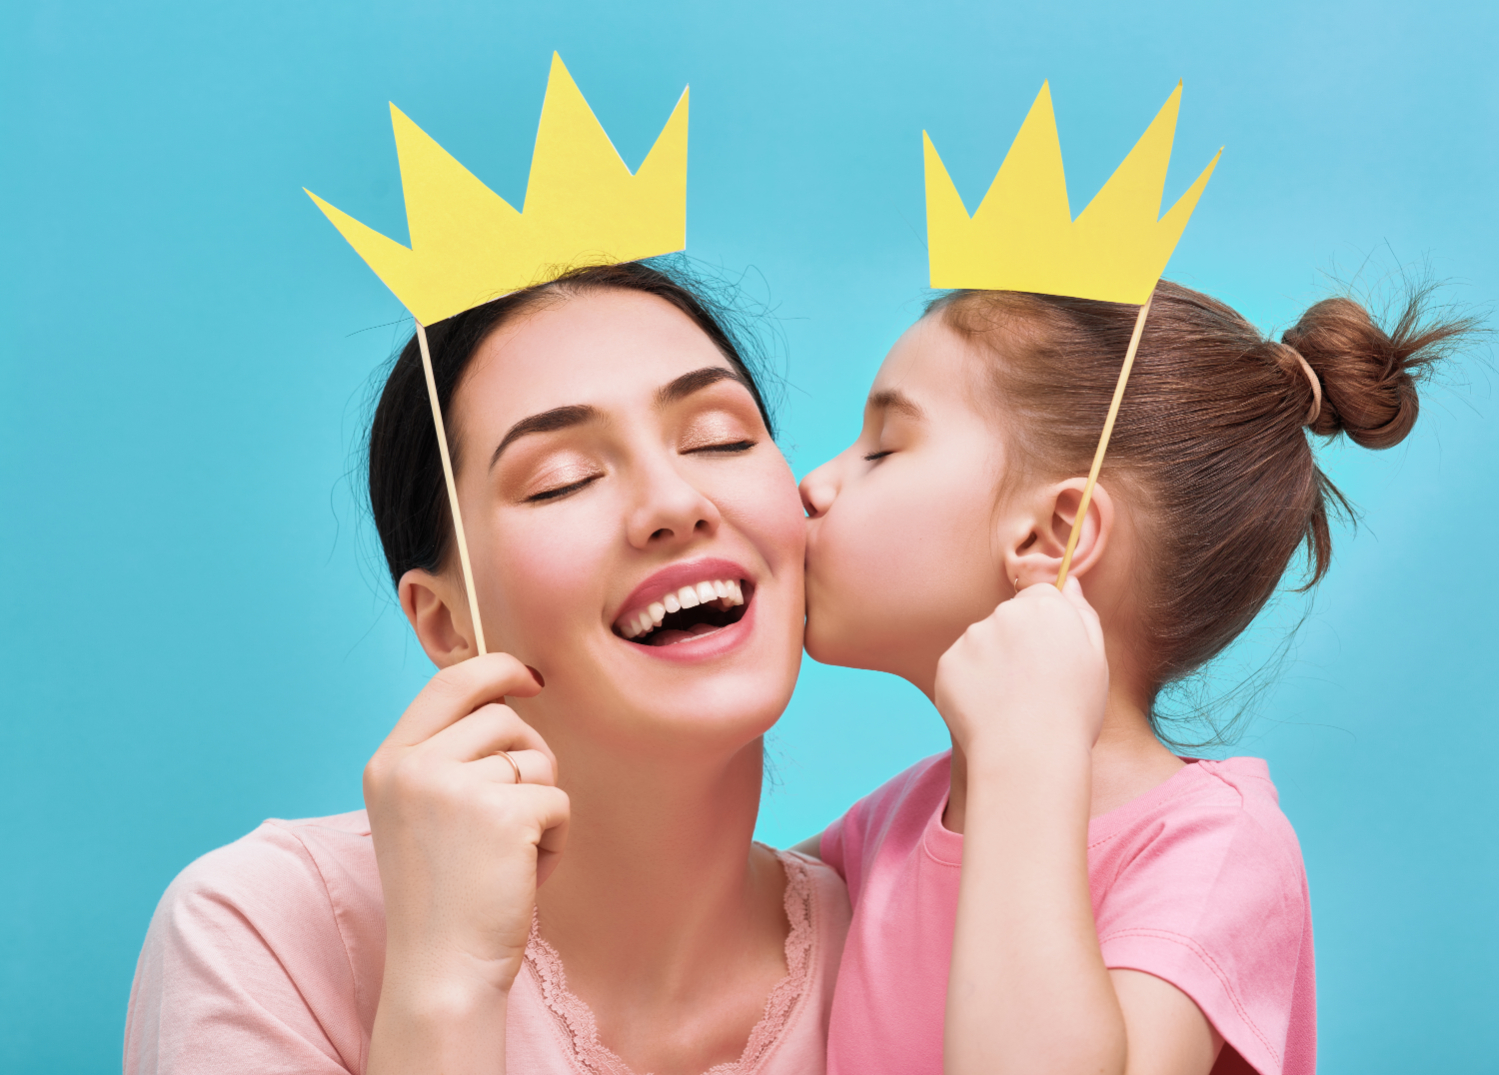 Mom and child holding paper crown on stick. Mom laughing